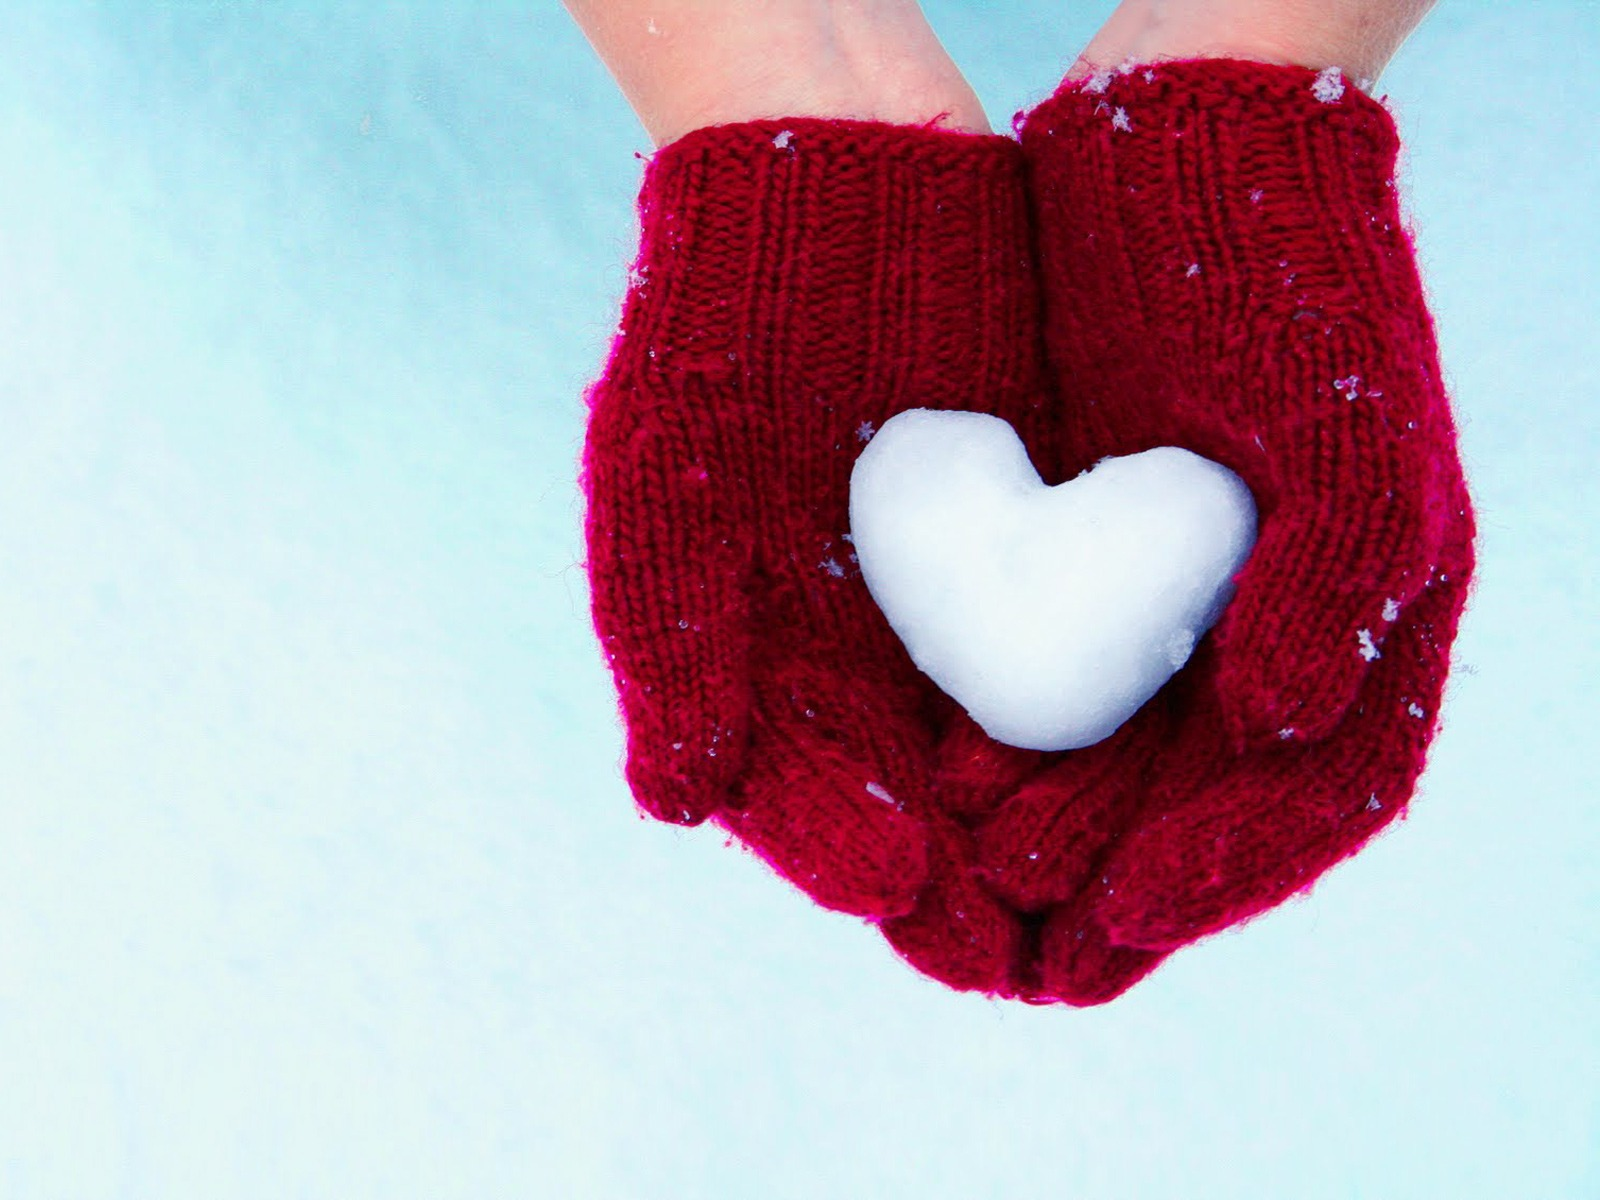 click to free download the wallpaper--Image of Romance, Red Gloves, I Give You My Heart, Cherish It! 1600X1200 free wallpaper download